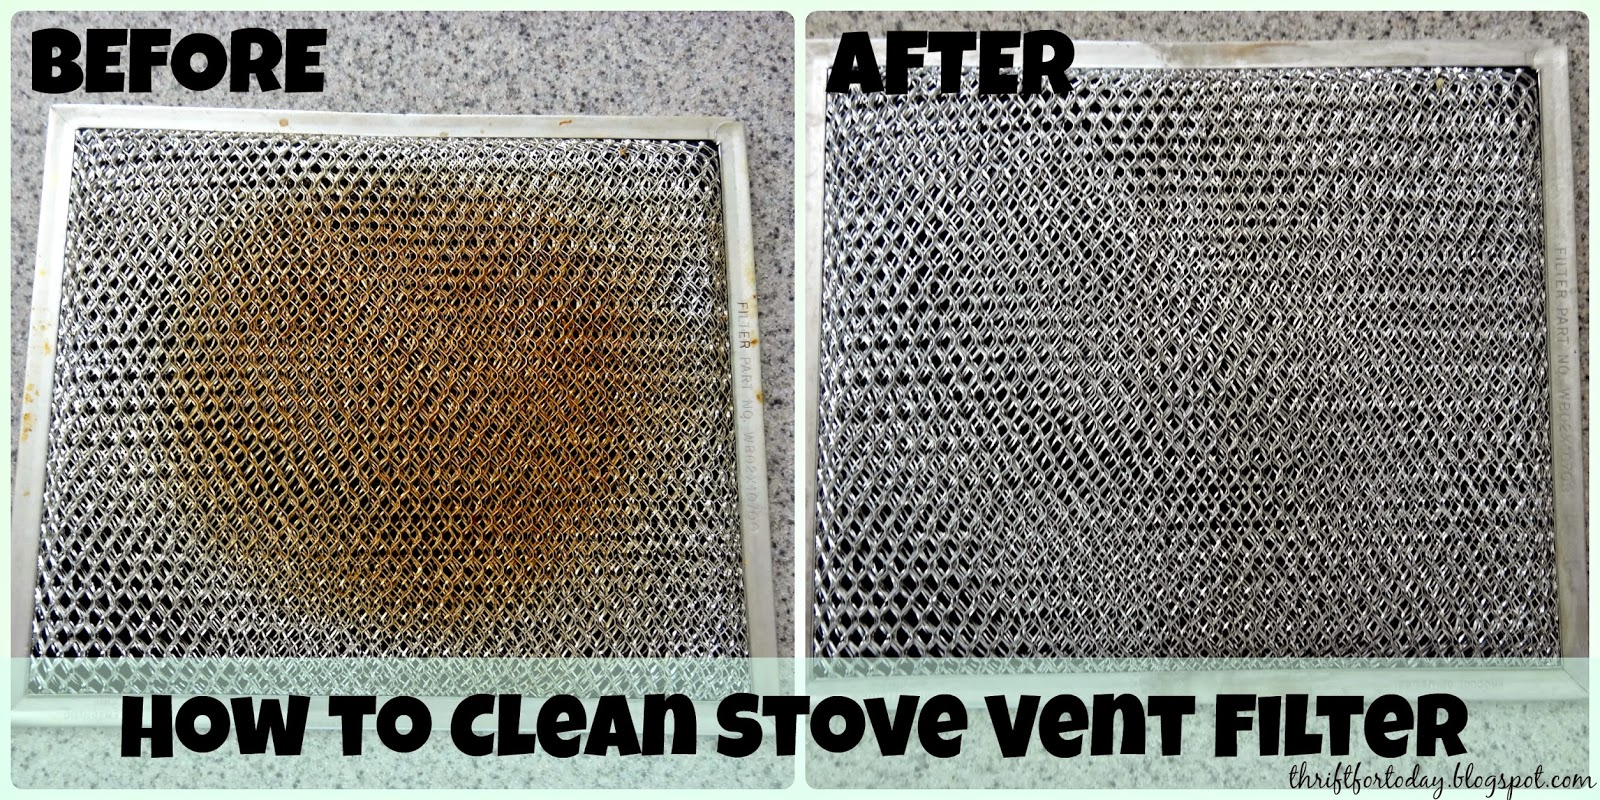 How to clean the stove vent filter